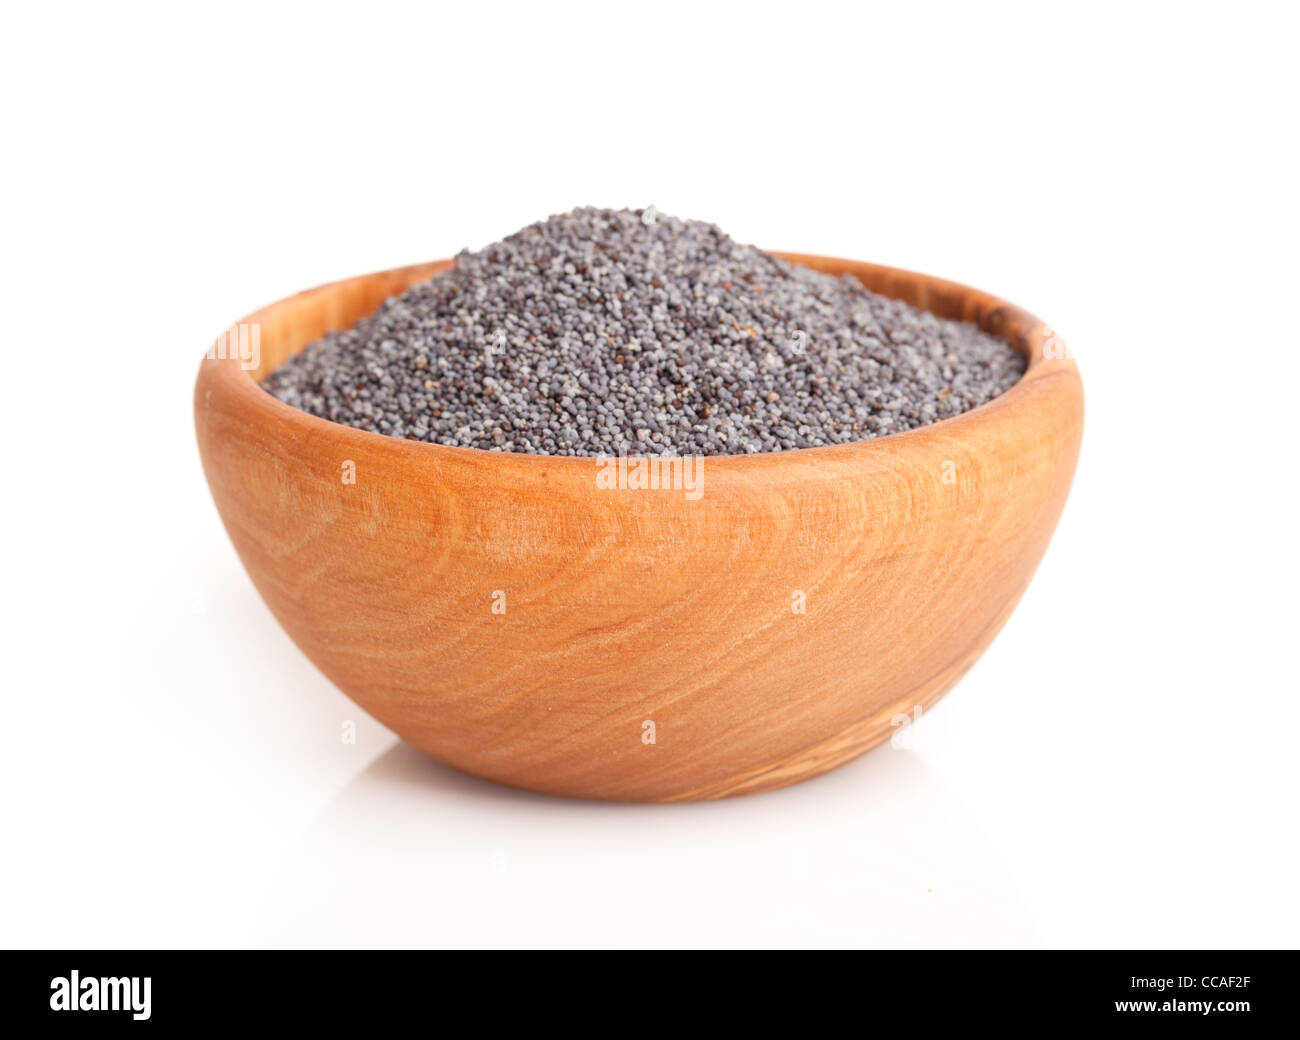 poppyseed in the wooden bowl. - Stock Image